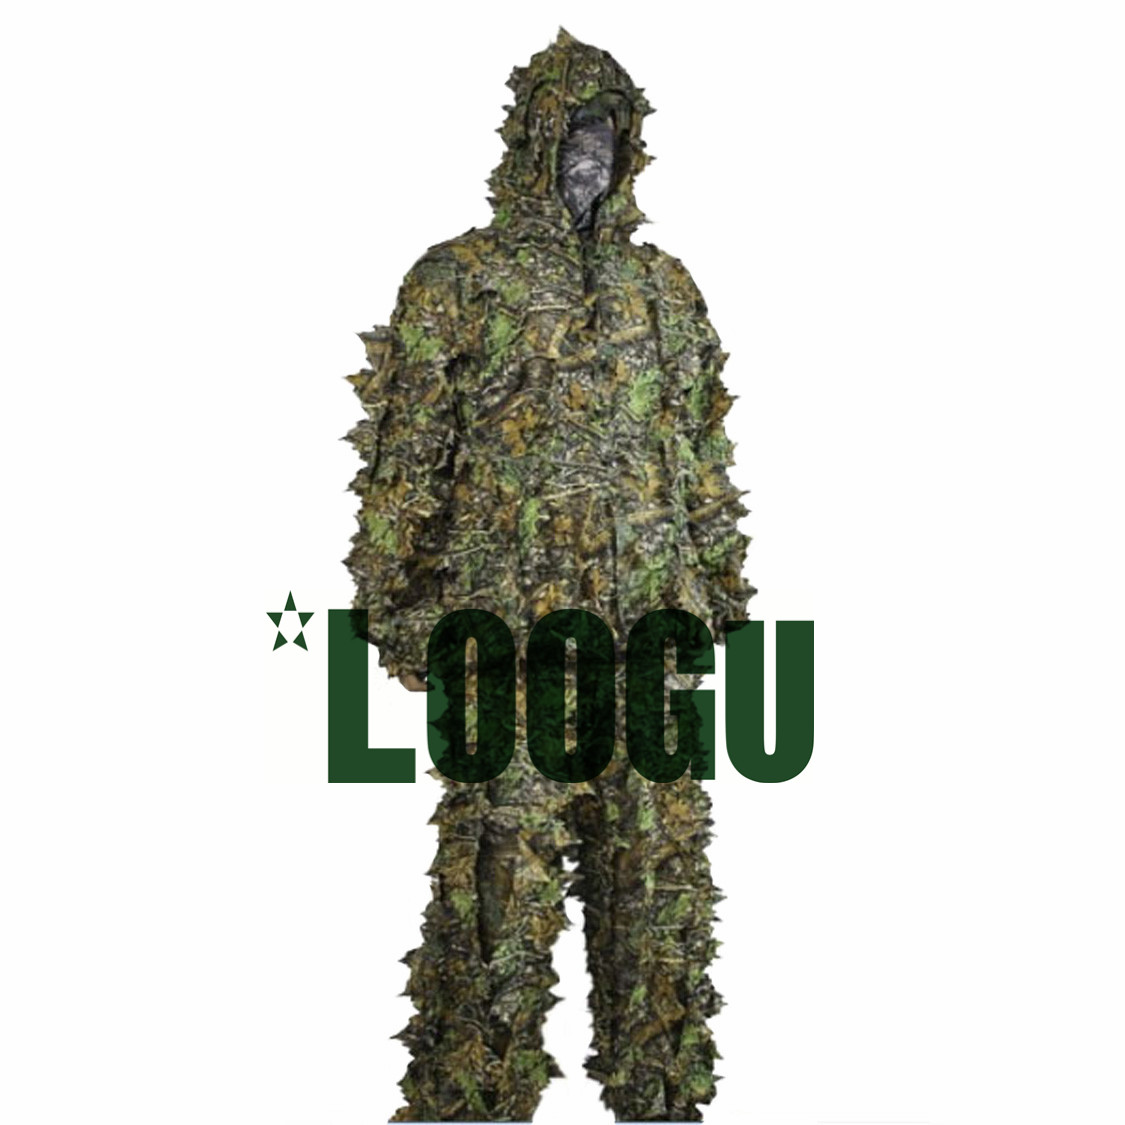 LOOGU Camo Suits Ghillie Suit 3D Leaves Woodland Camouflage Clothing Kit Cloak Jungle Hunting Military Sniper clothes Pants drawstring spliced camo jogger pants